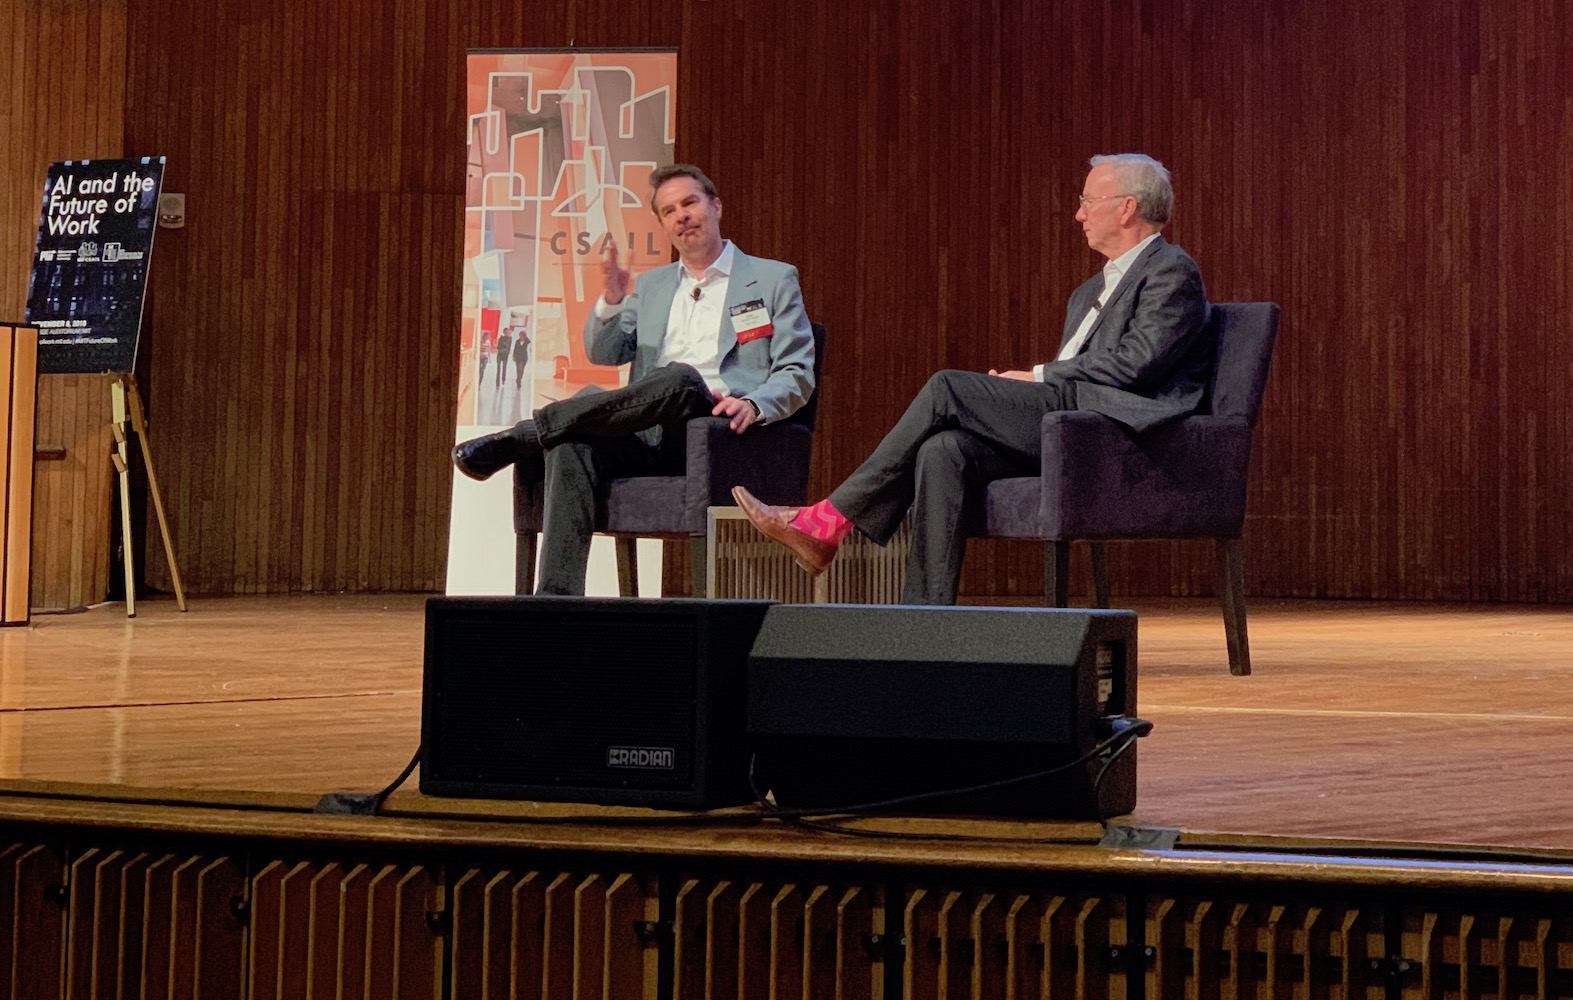 Google's Eric Schmidt: 5 Years Before A.I. Is More Than An Advisor